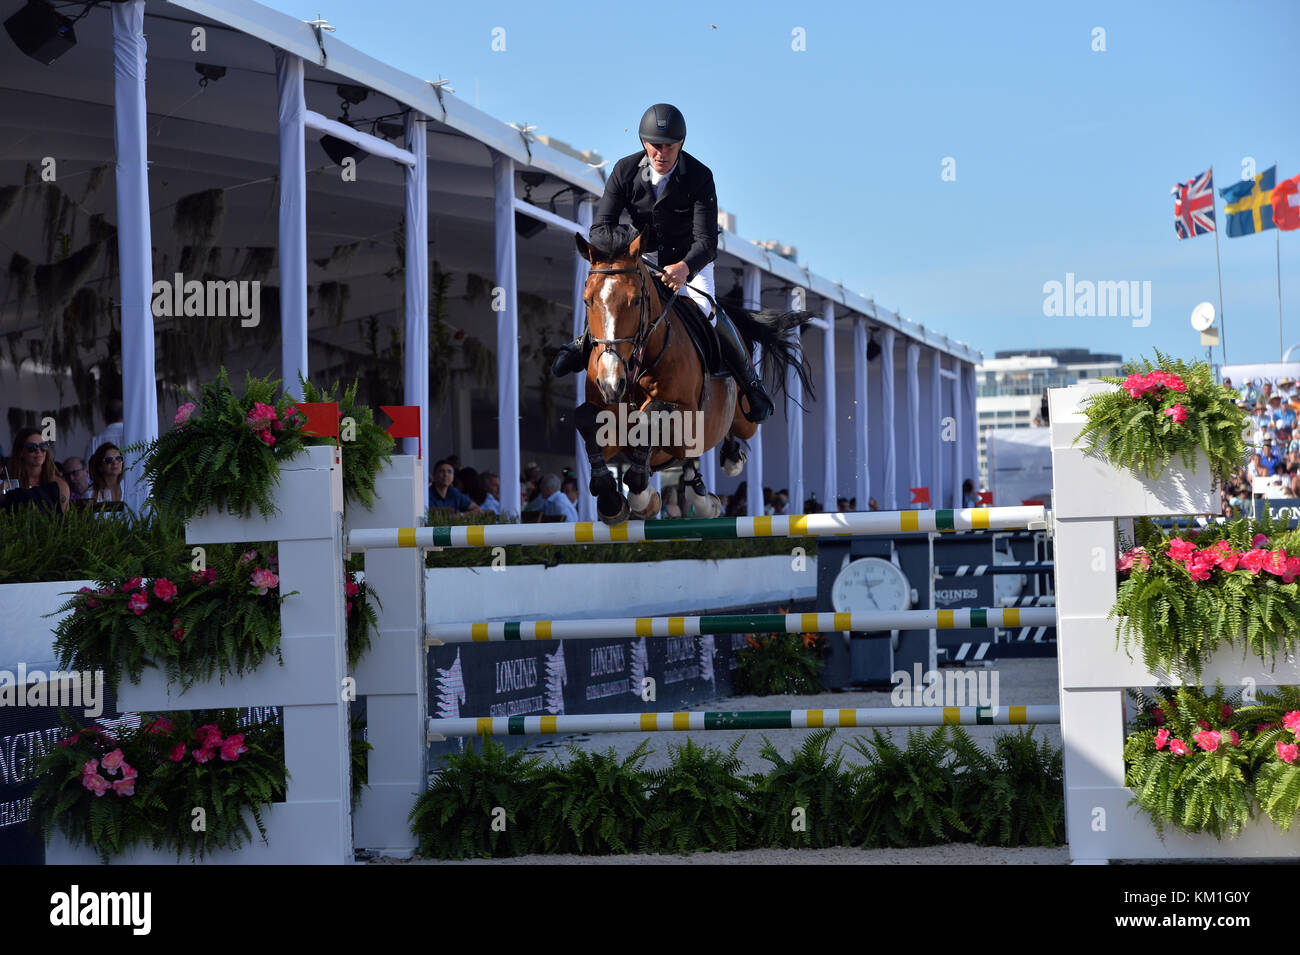 MIAMI BEACH, FL - APRIL 09: Roger Yves Bost at the Longines Global Champions Tour stop in Miami Beach on April 9, - Stock Image